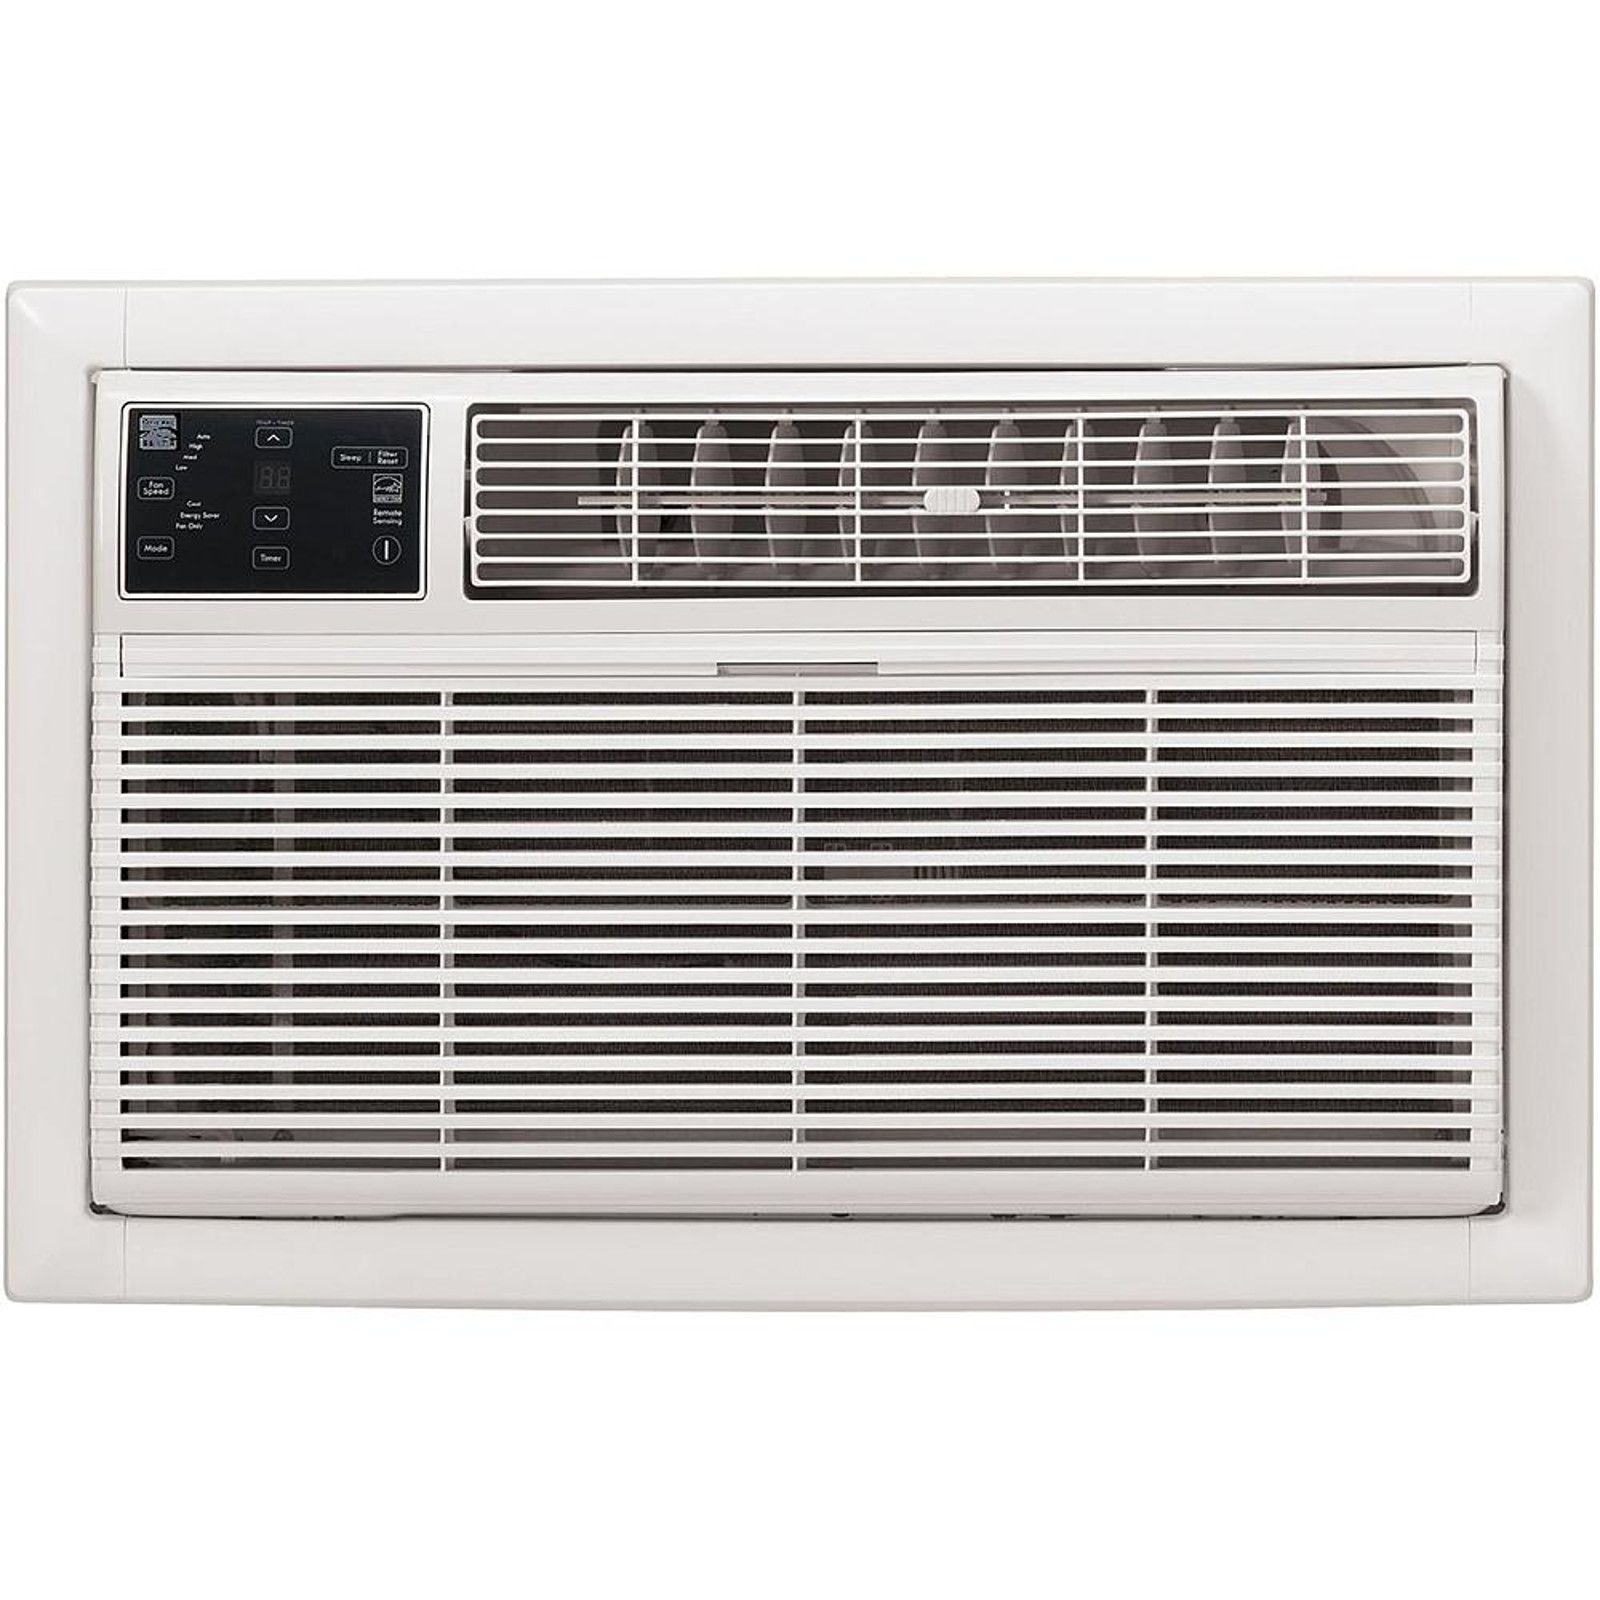 Pin by Surficia M. on AC Wall air conditioner, Room air